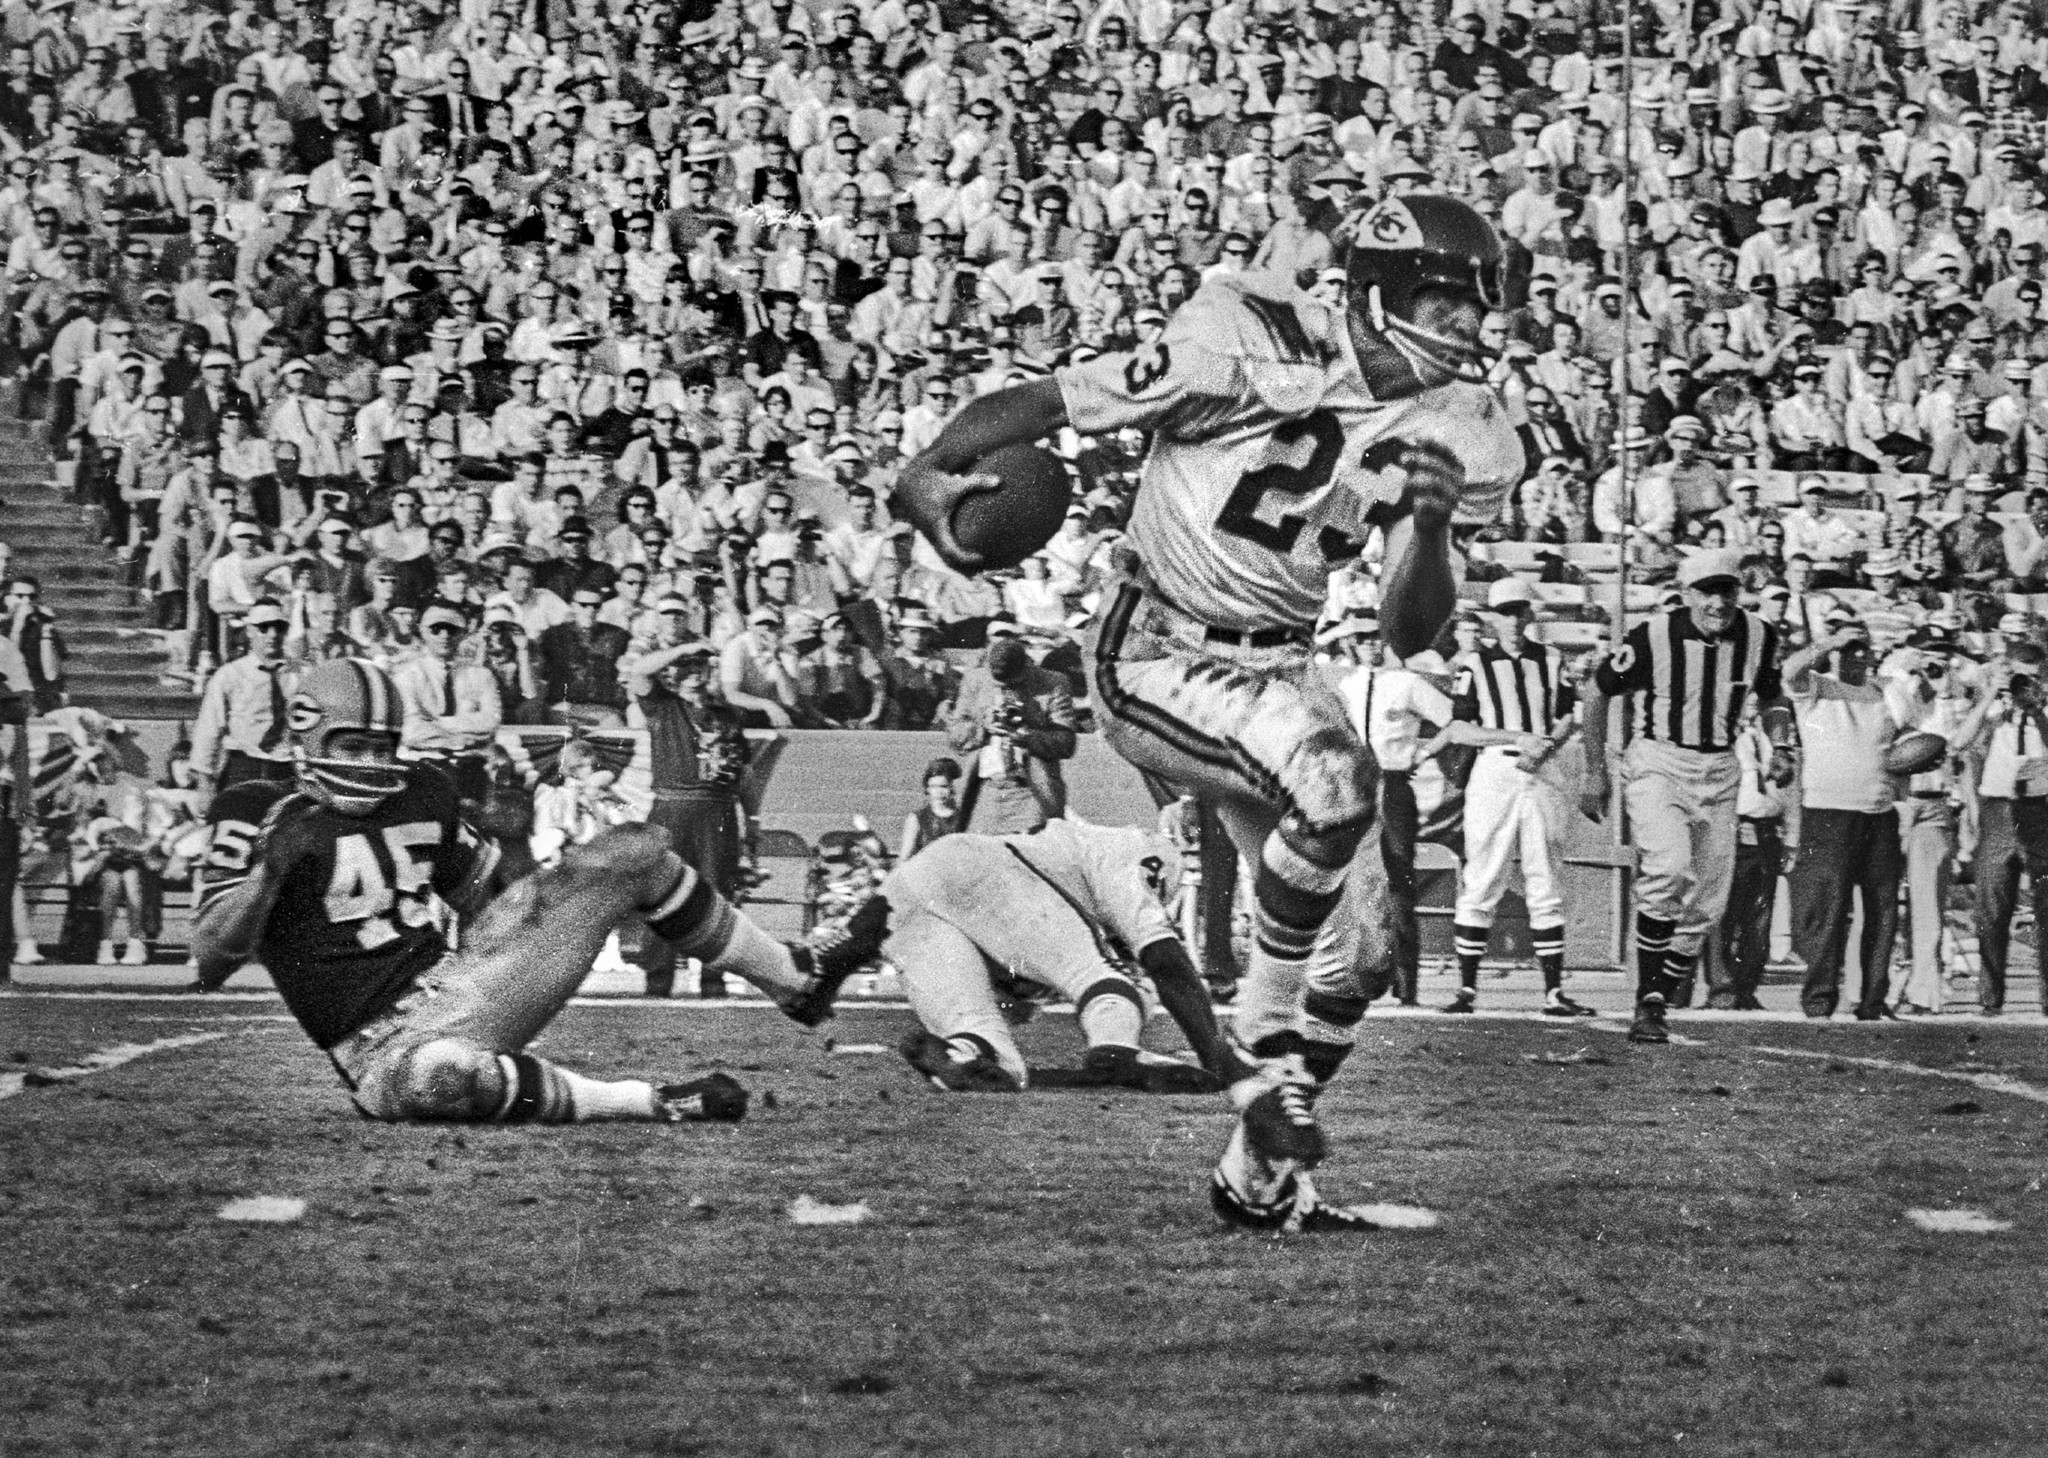 Jan. 15, 1967: Kansas City Chiefs' halfback Bert Coann in action against the Green Bay Packers in f